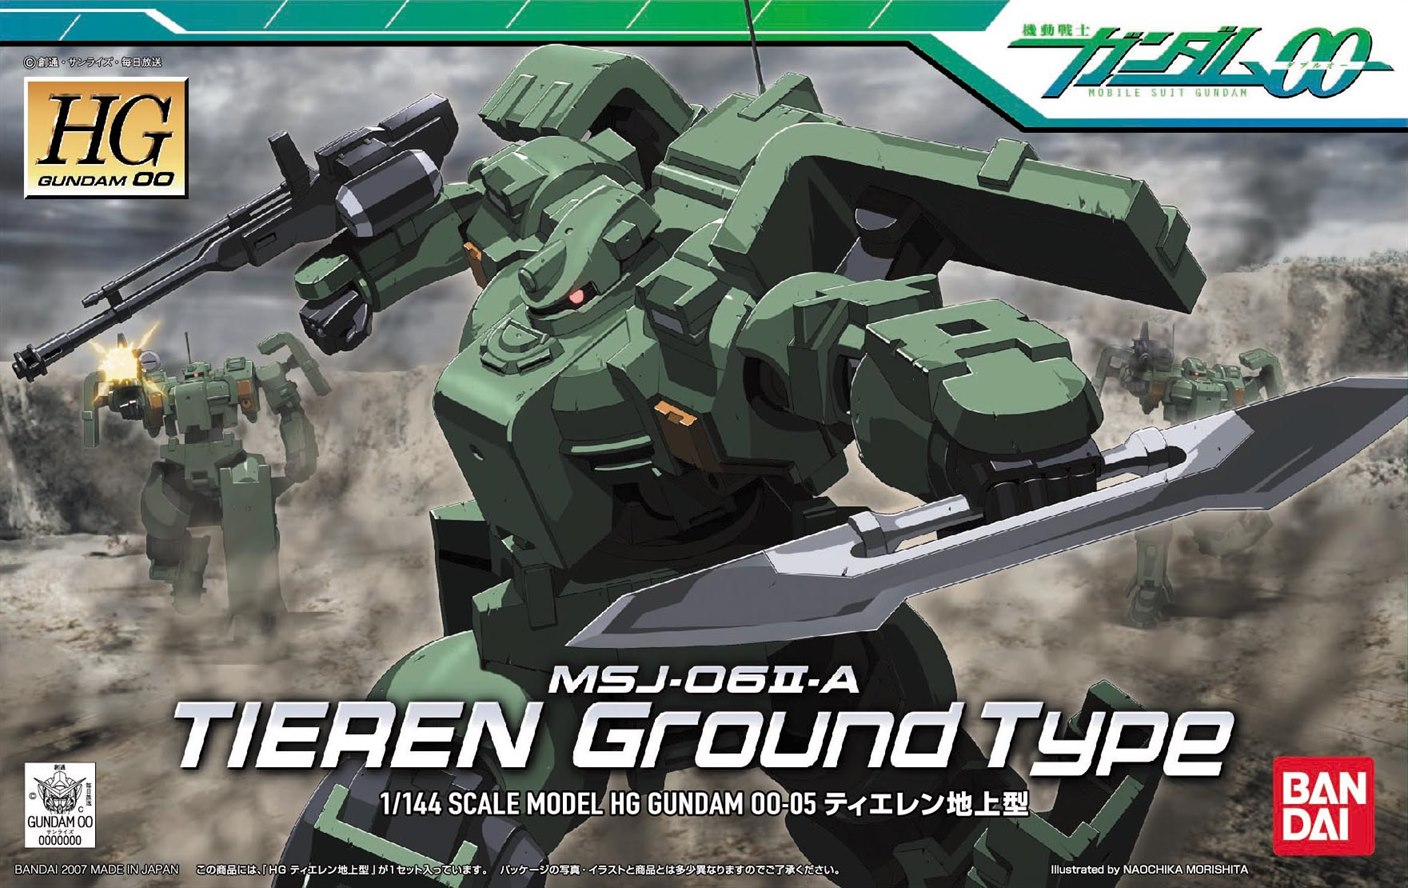 [05] HG 1/144 MSJ-06II-A Tieren Ground Type (Land)